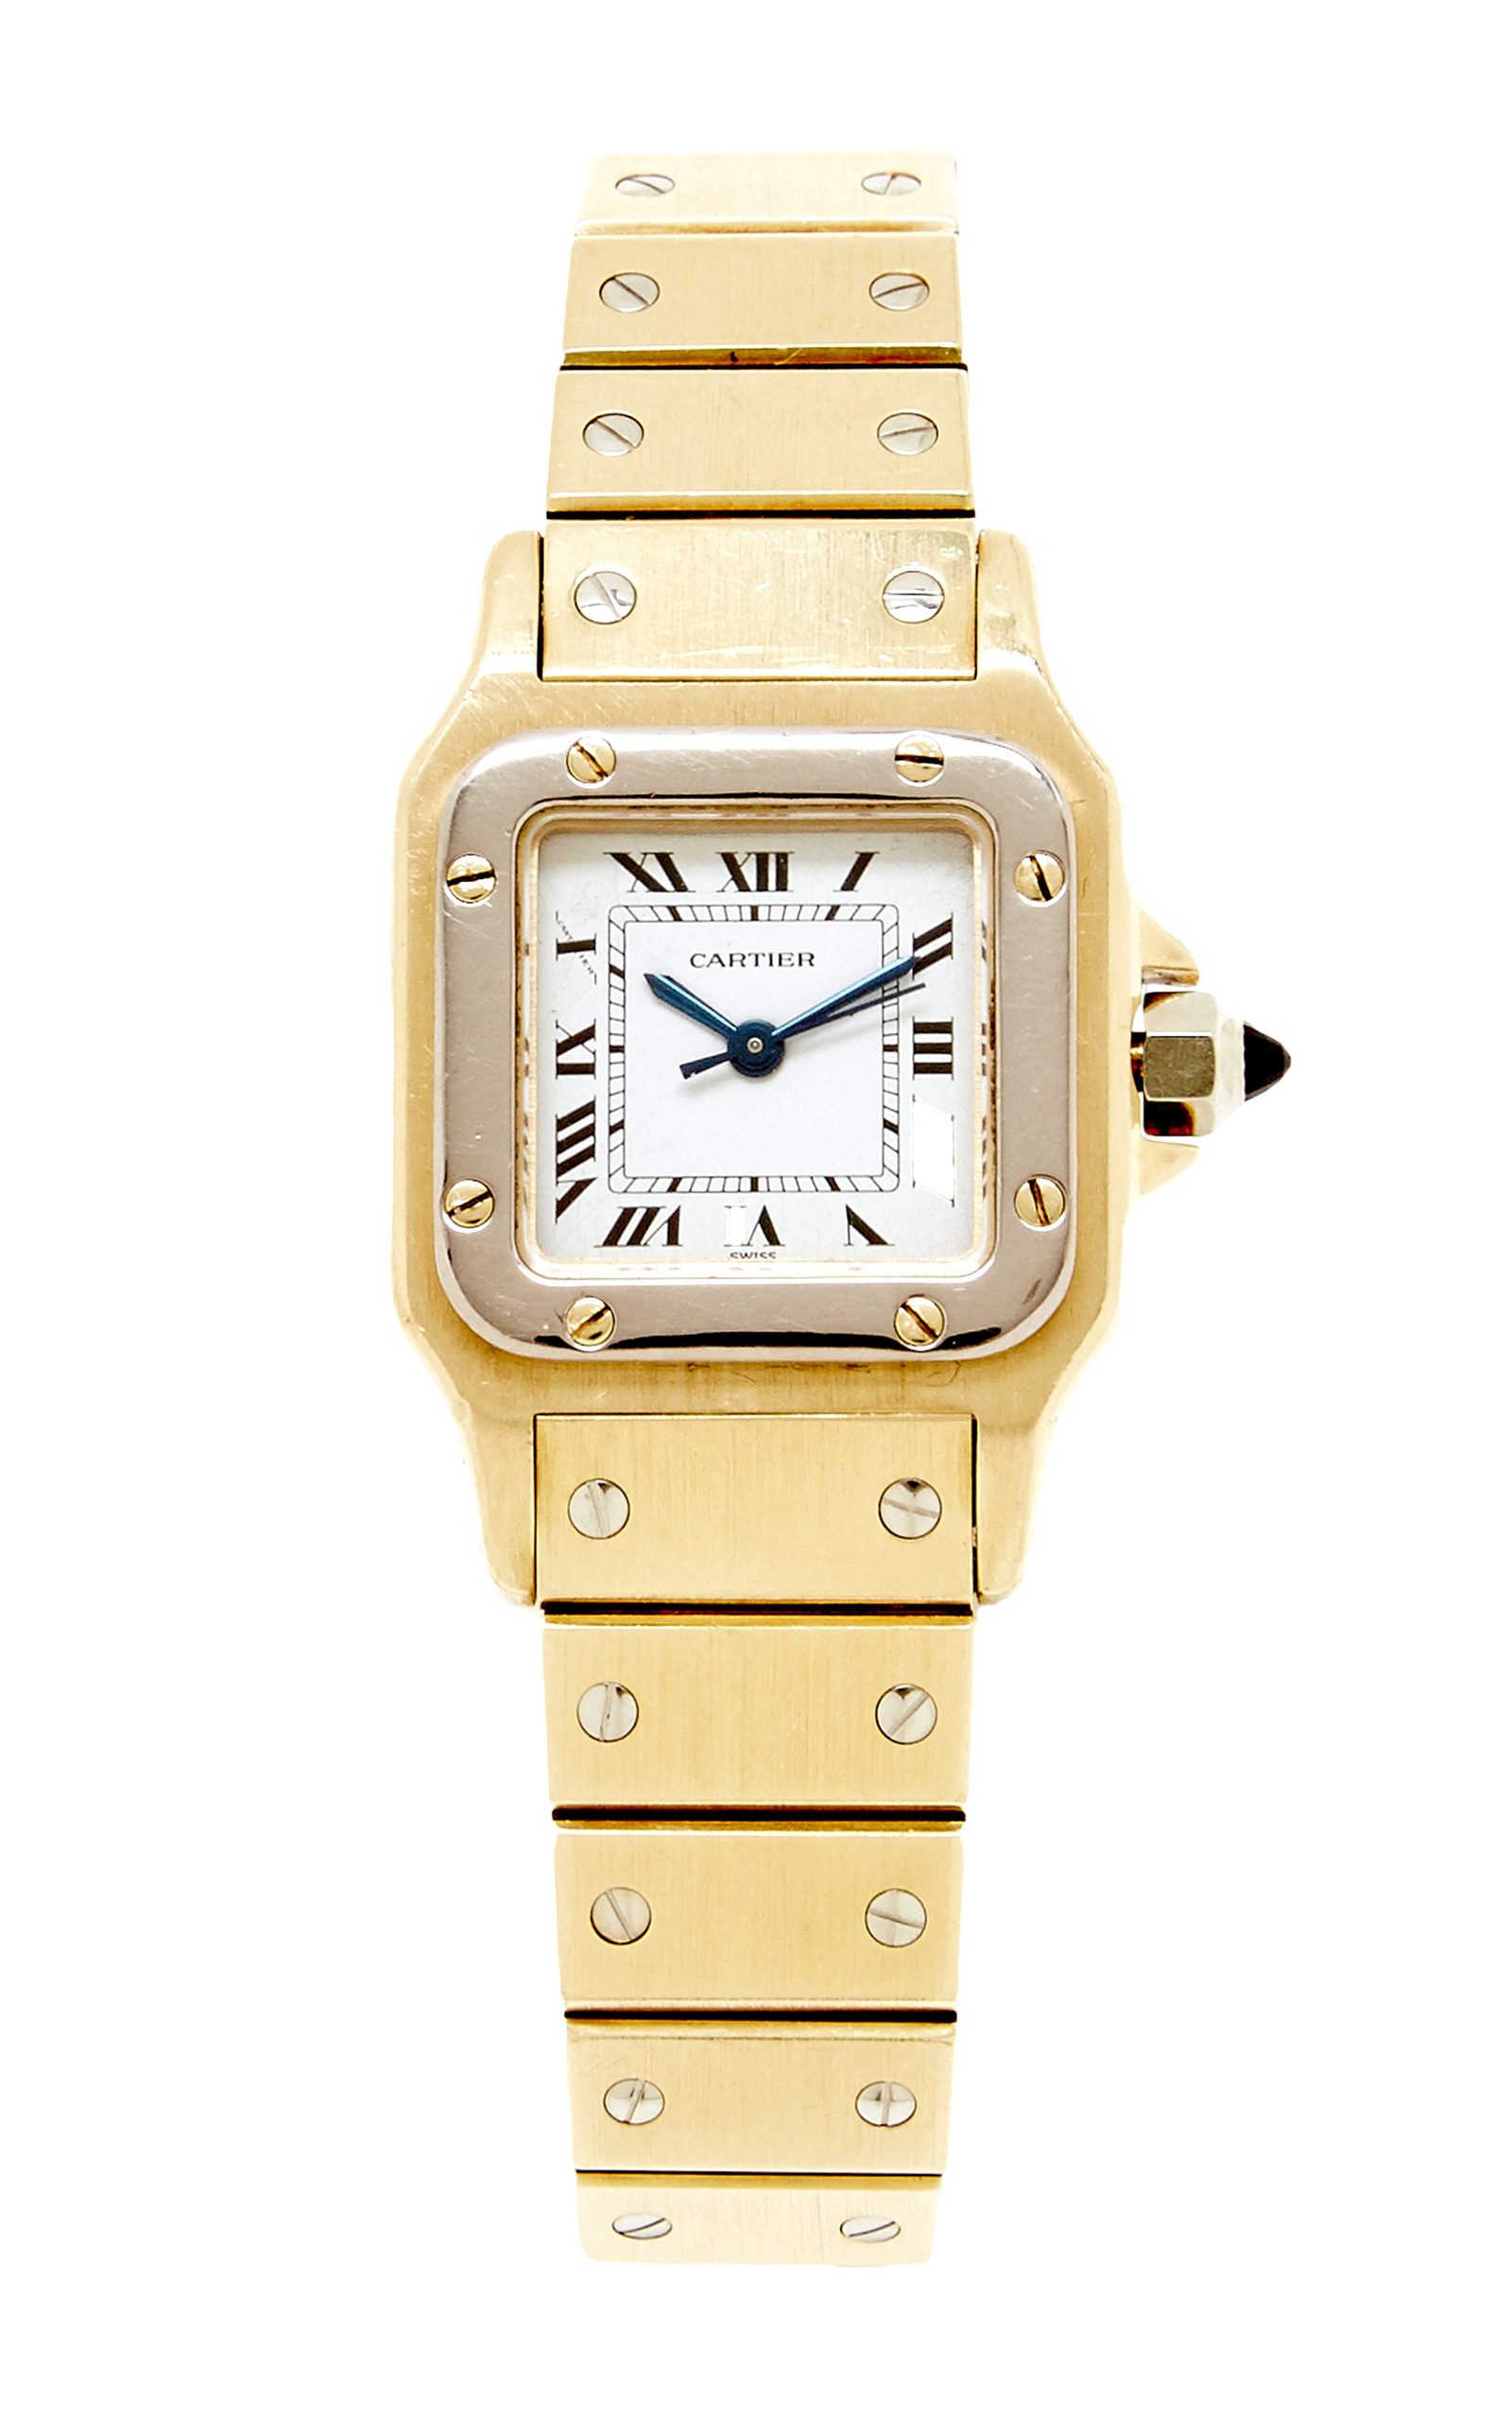 wristwatch gold luxury white philippe sku reference watch patek watches rare calendar perpetual